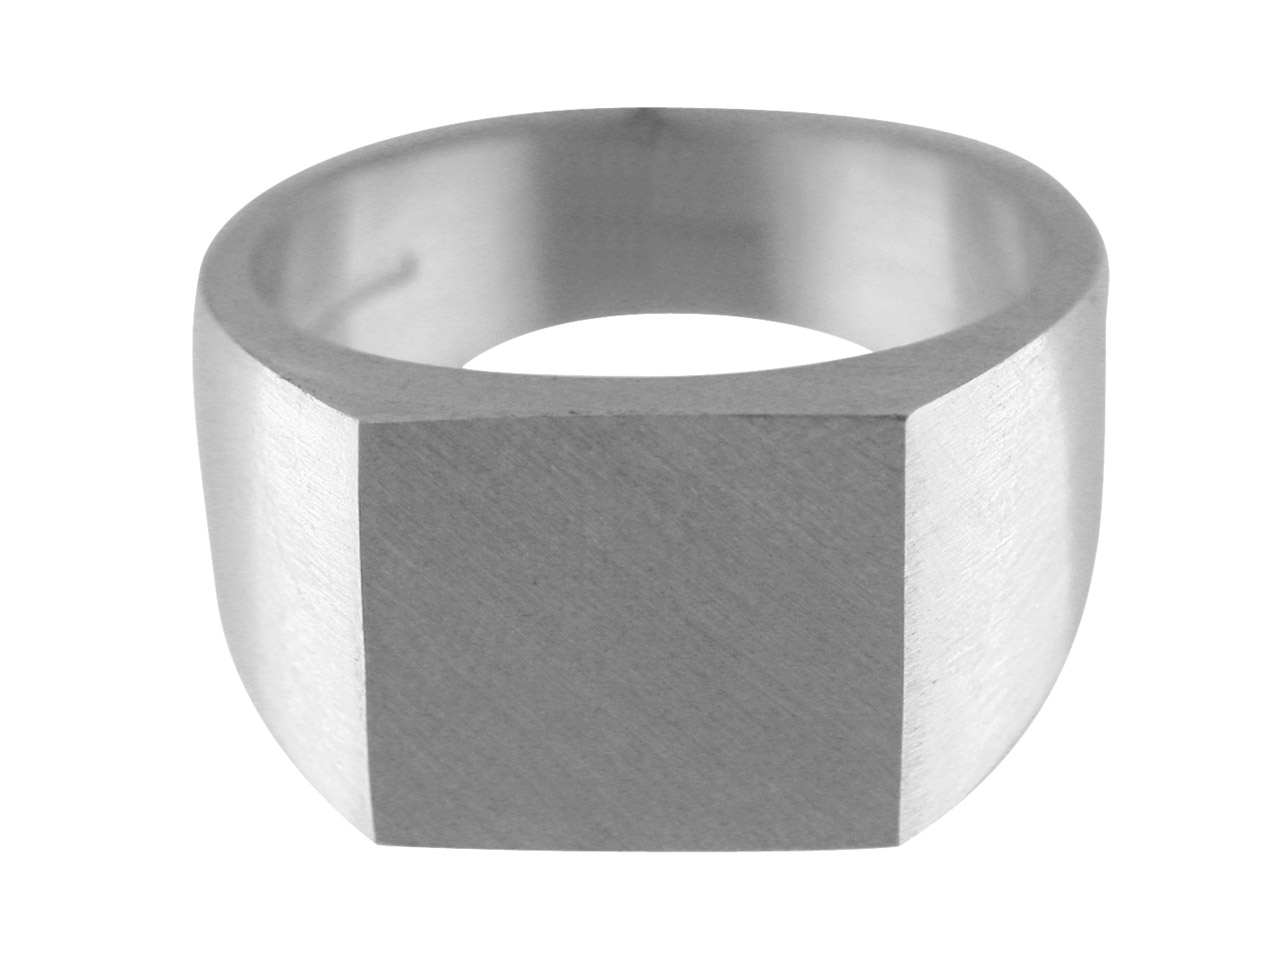 Sterling Silver G10 Initial Square Ring Hallmarked 12x12mm Head Depth 2.8mm Size T